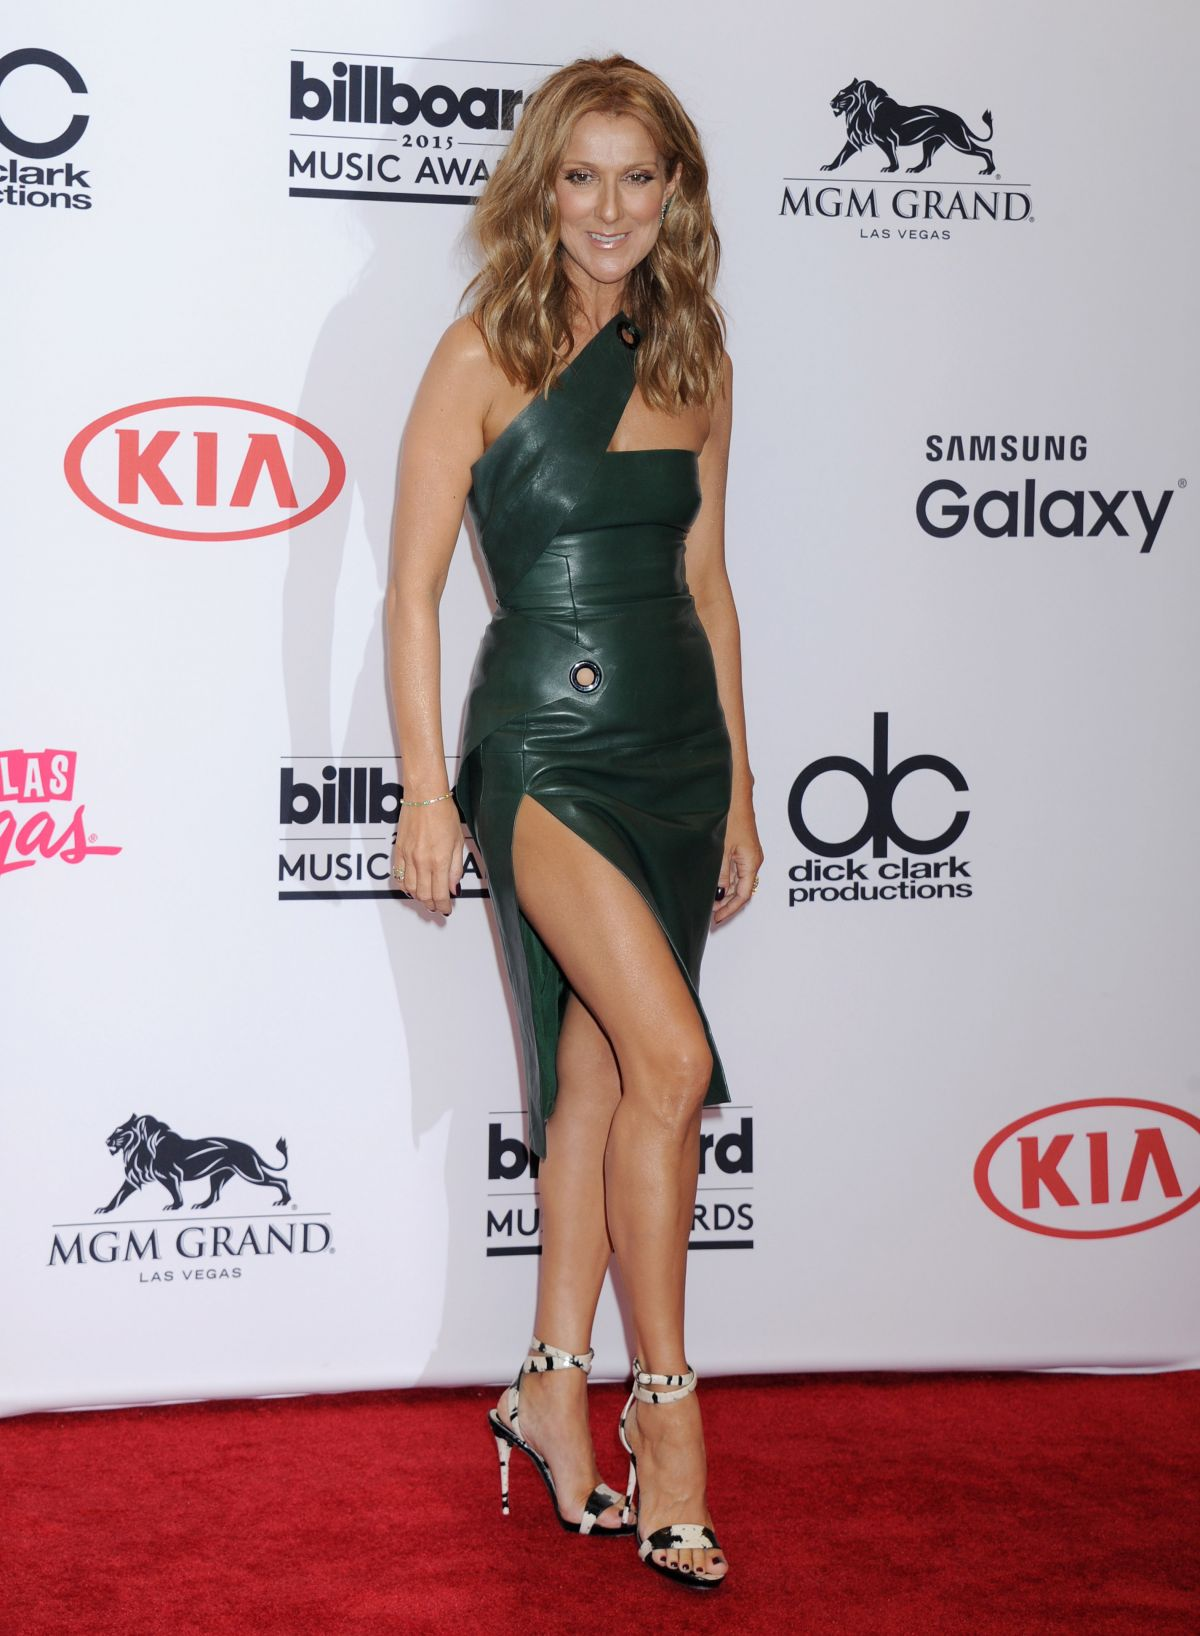 CELINE DION at 2015 Billboard Music Awards in Las Vegas